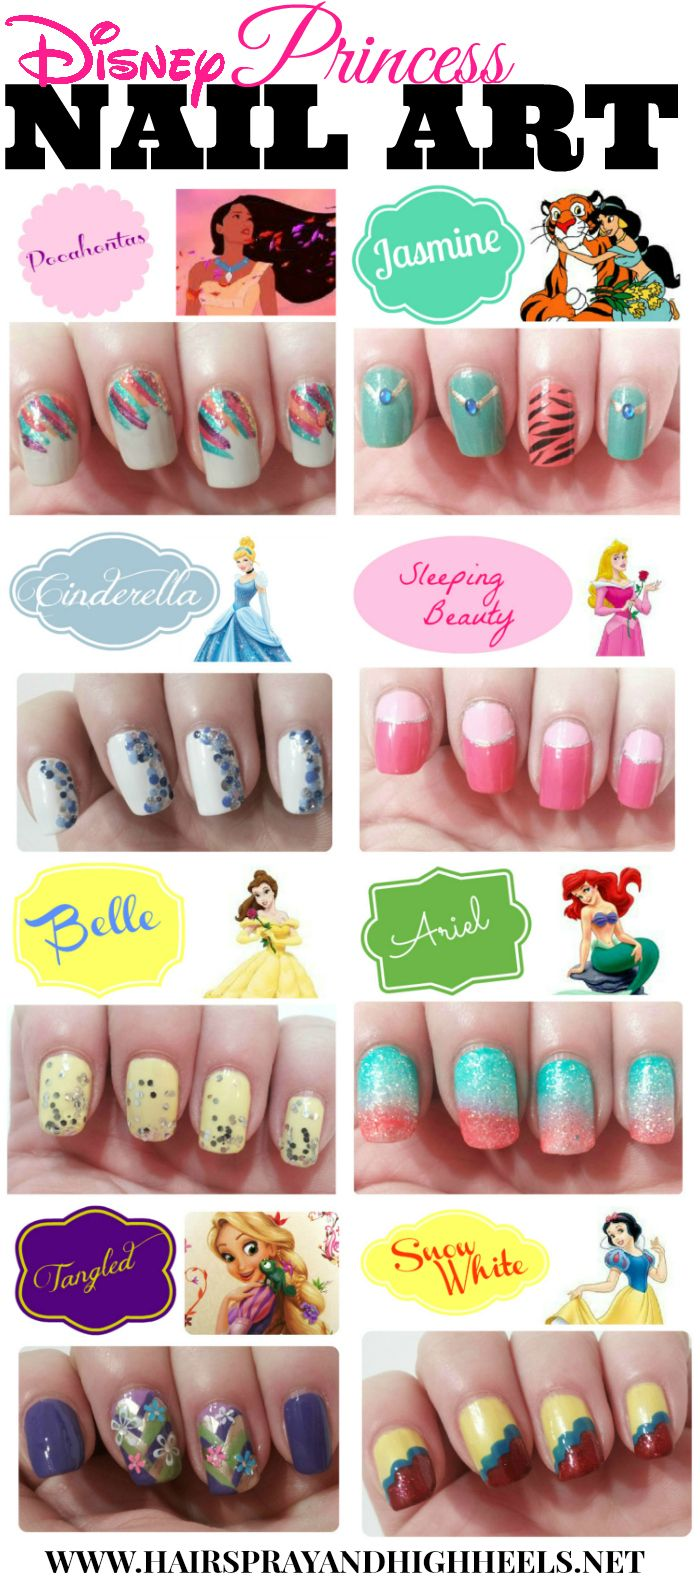 I love the Cinderella and Aurora nails. However, I would do Aurora in blues because I liked her better in the blue than in pink.